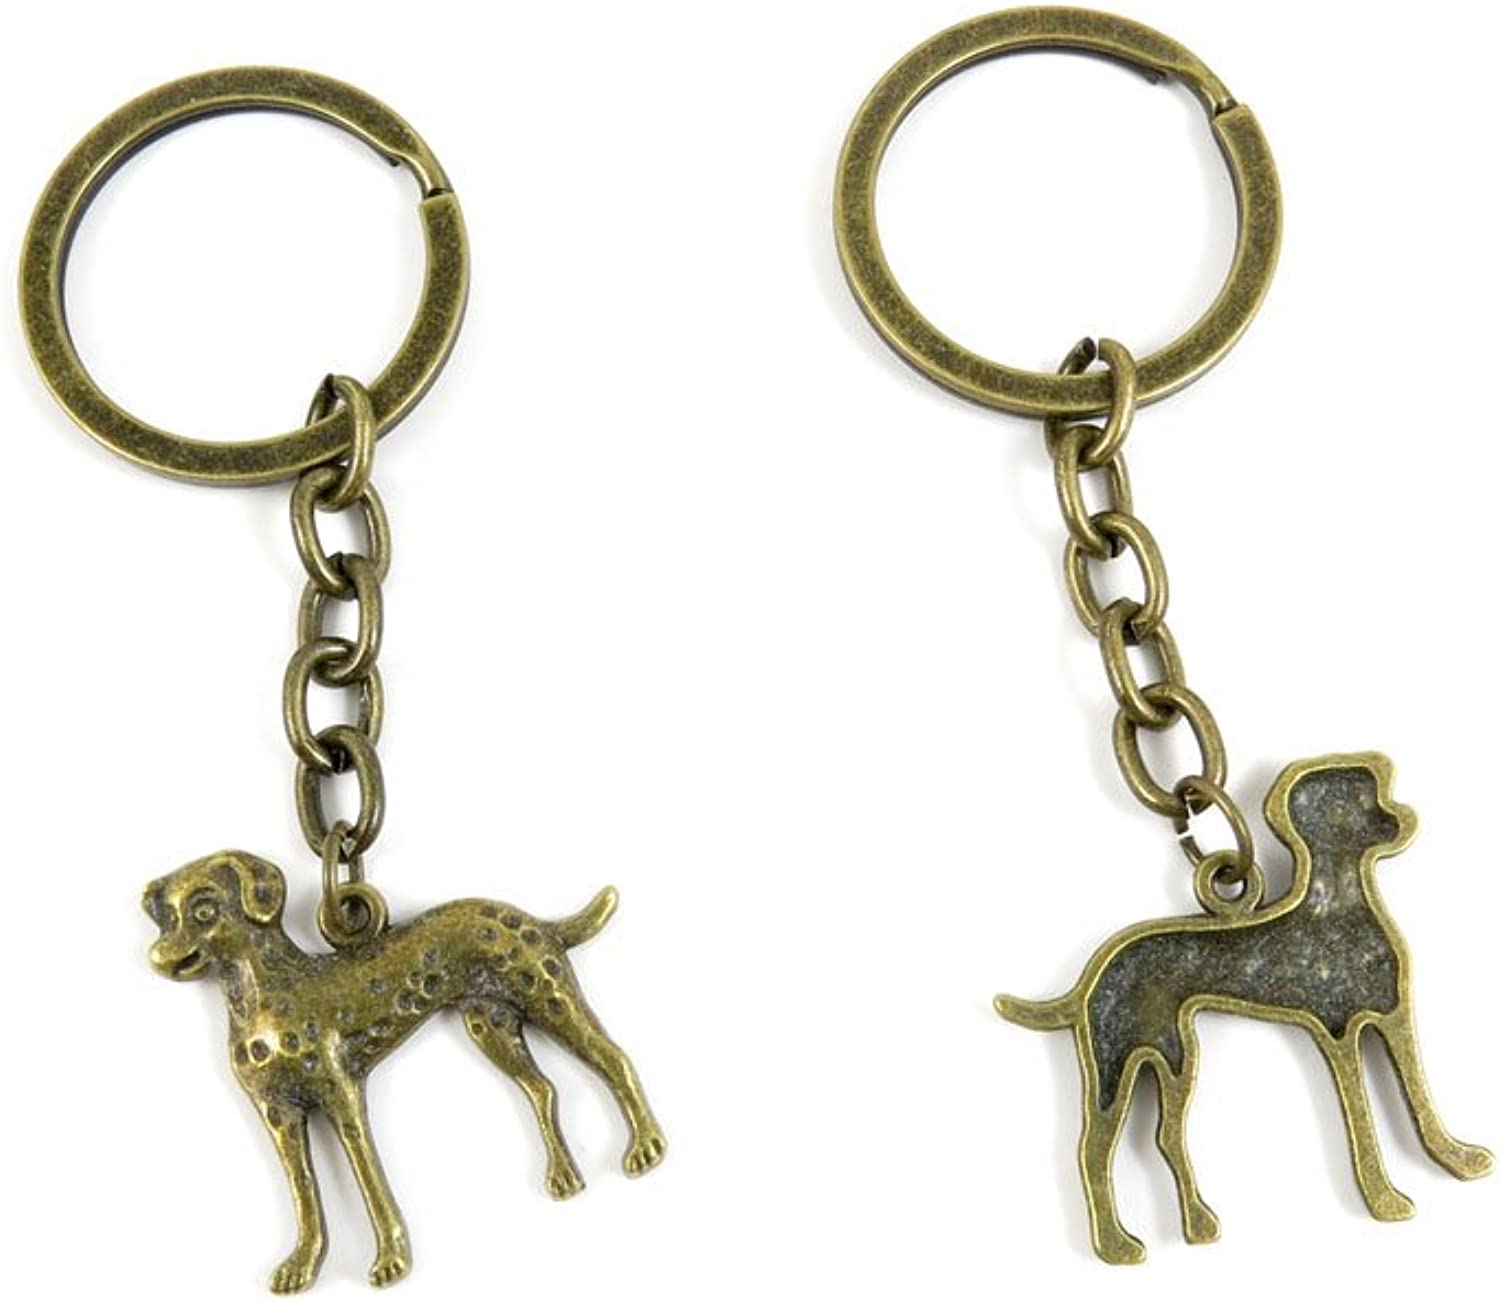 190 Pieces Fashion Jewelry Keyring Keychain Door Car Key Tag Ring Chain Supplier Supply Wholesale Bulk Lots F7VP1 Dog Dalmatians